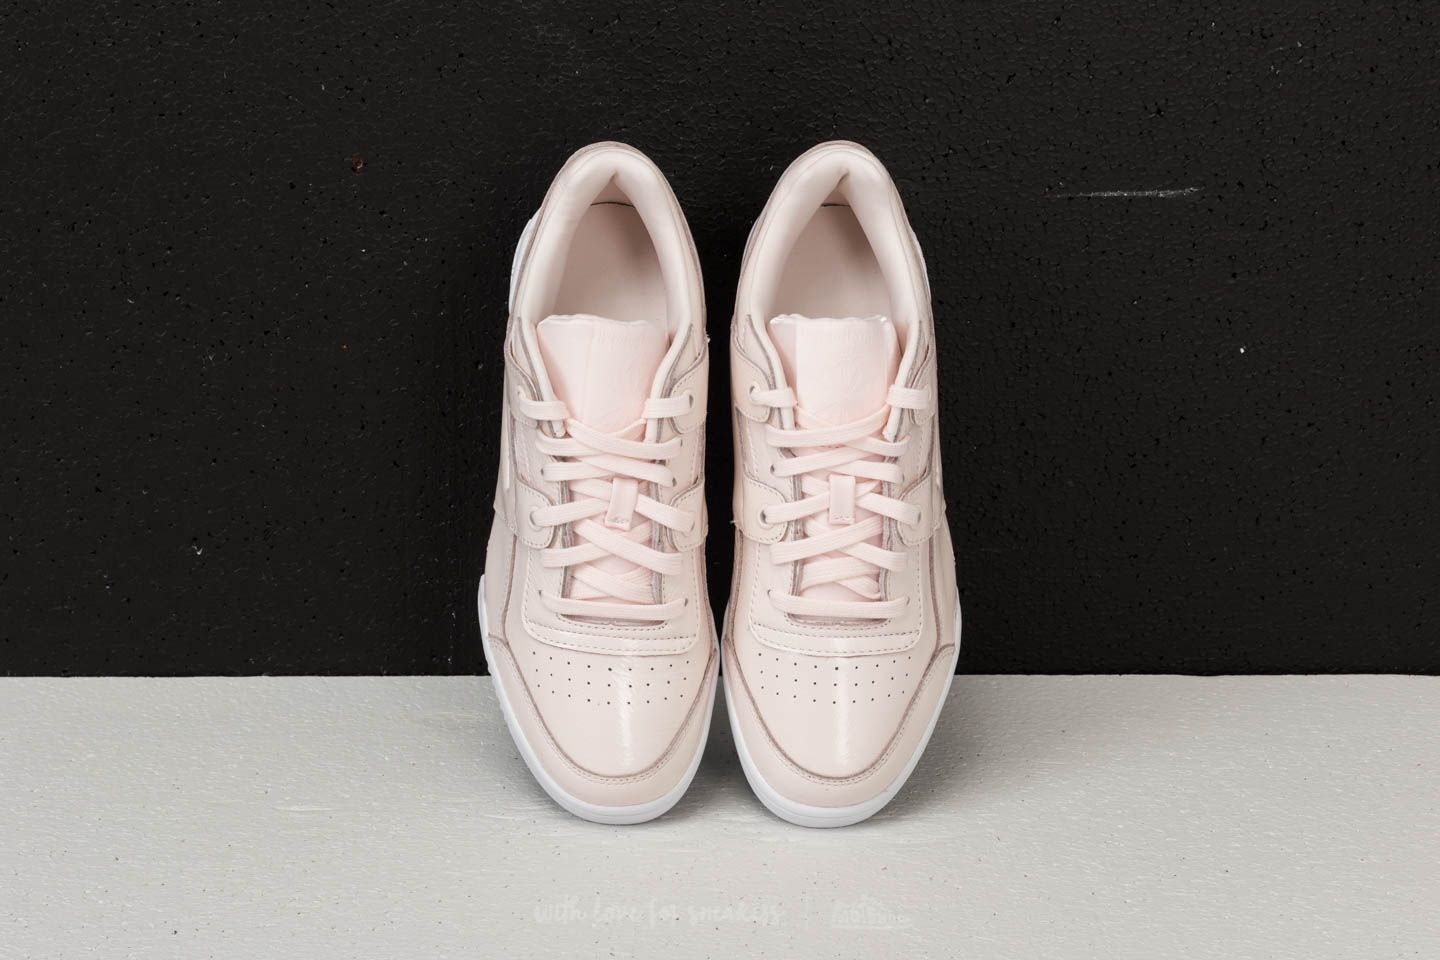 a9c7536880b07e Reebok Workout Lo Plus Iridescent Pale Pink  White at a great price £57 buy